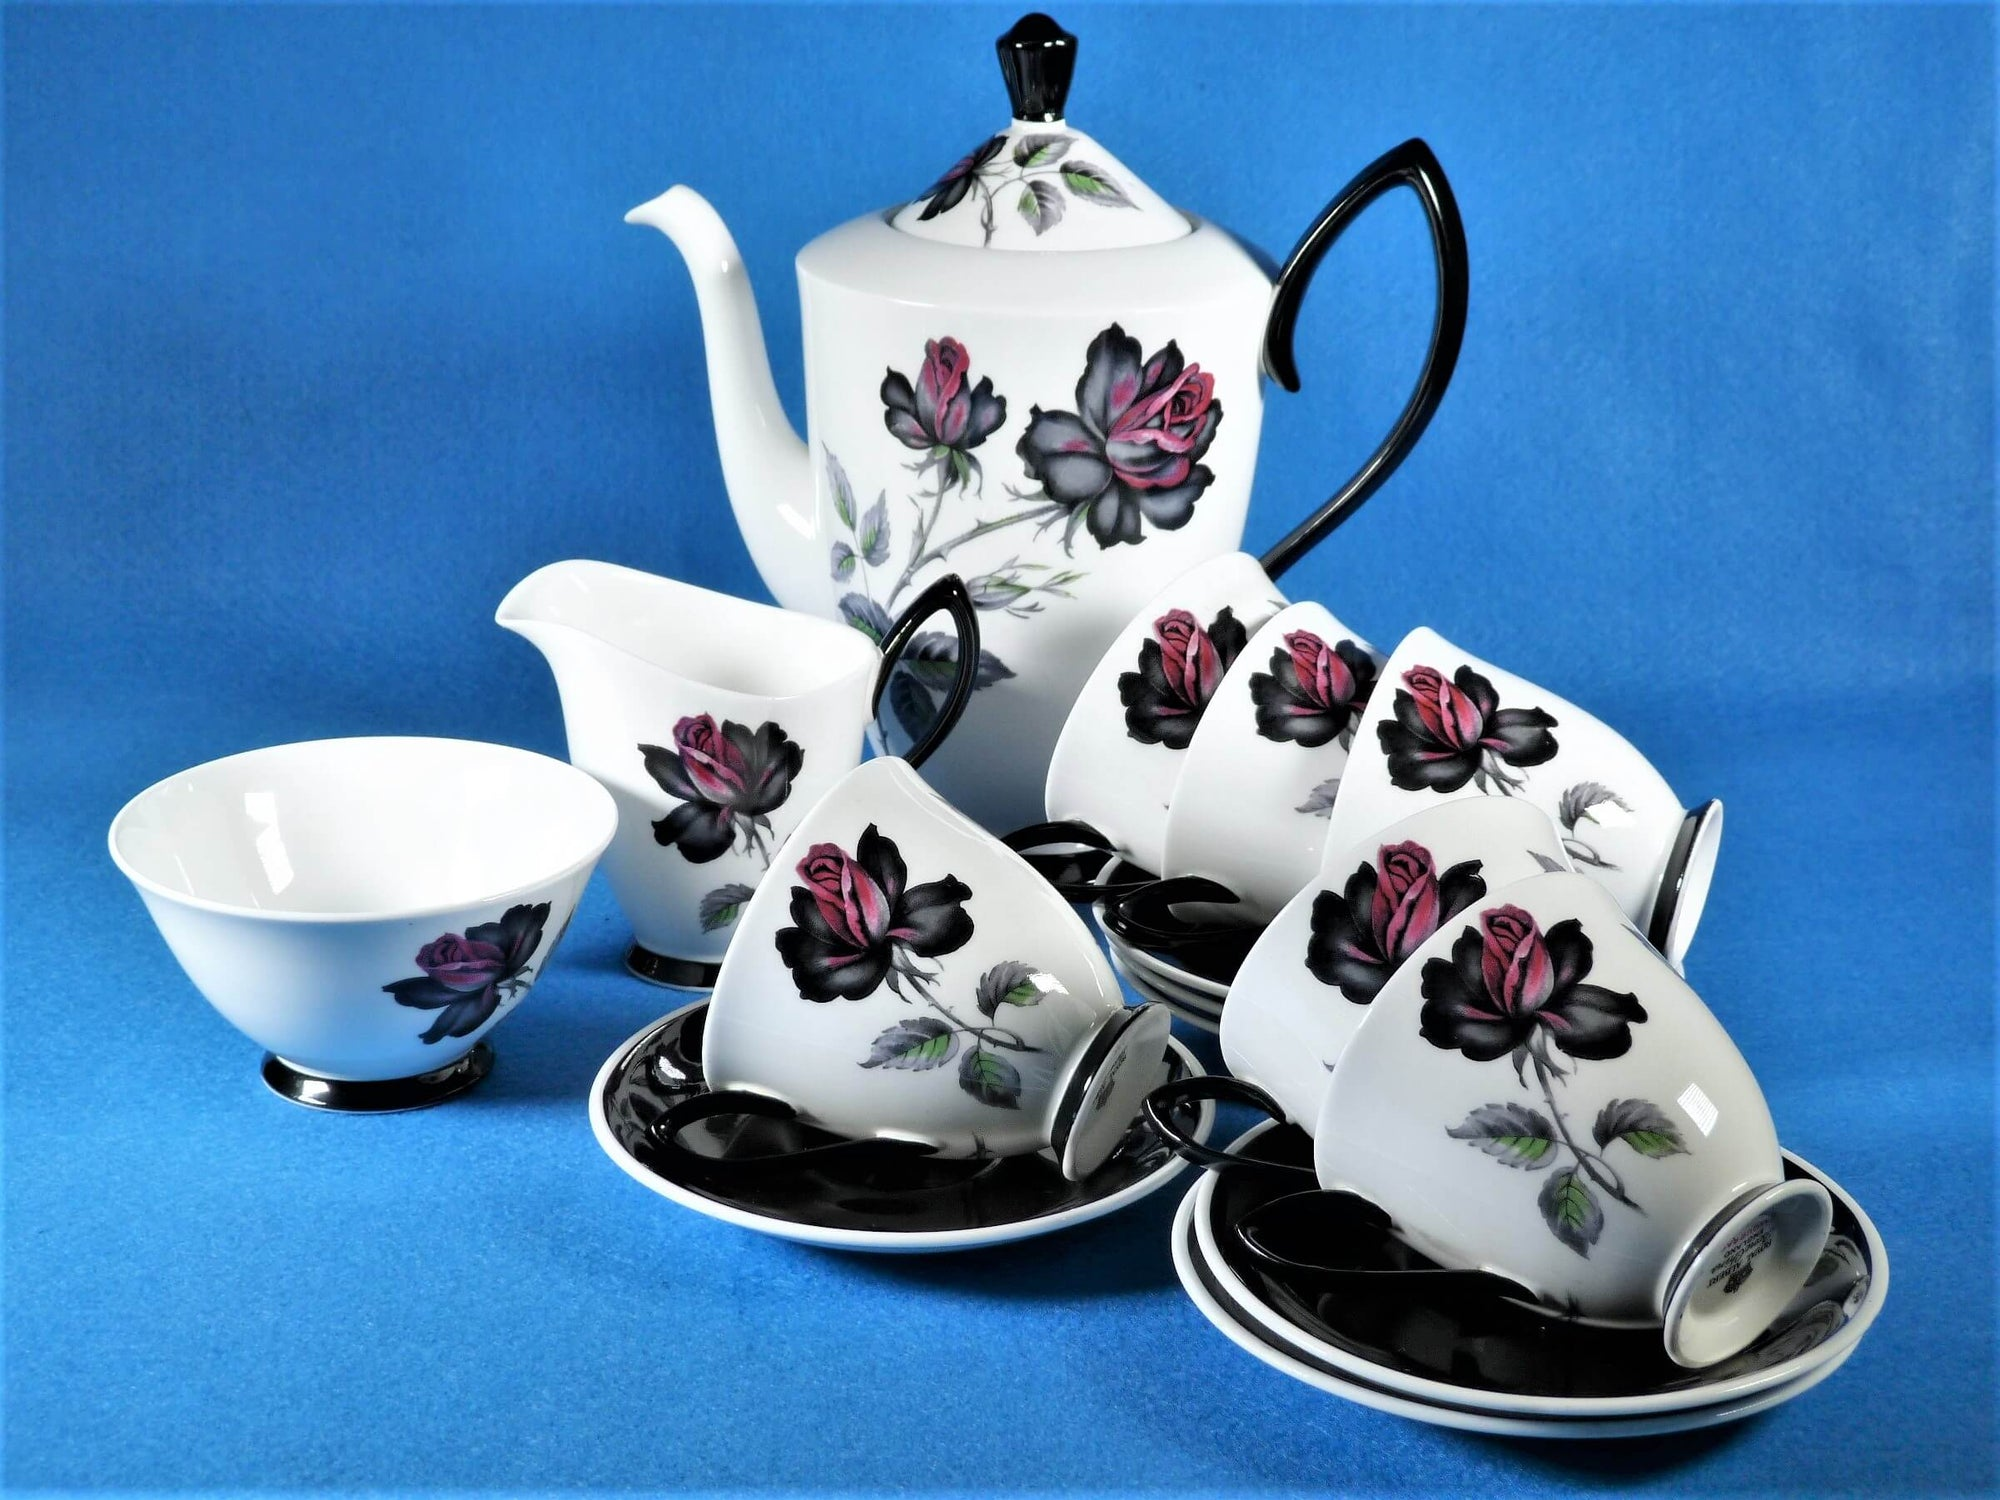 Royal Albert 'Masquerade' Coffee Set, Stunning Colour, Traditional Set